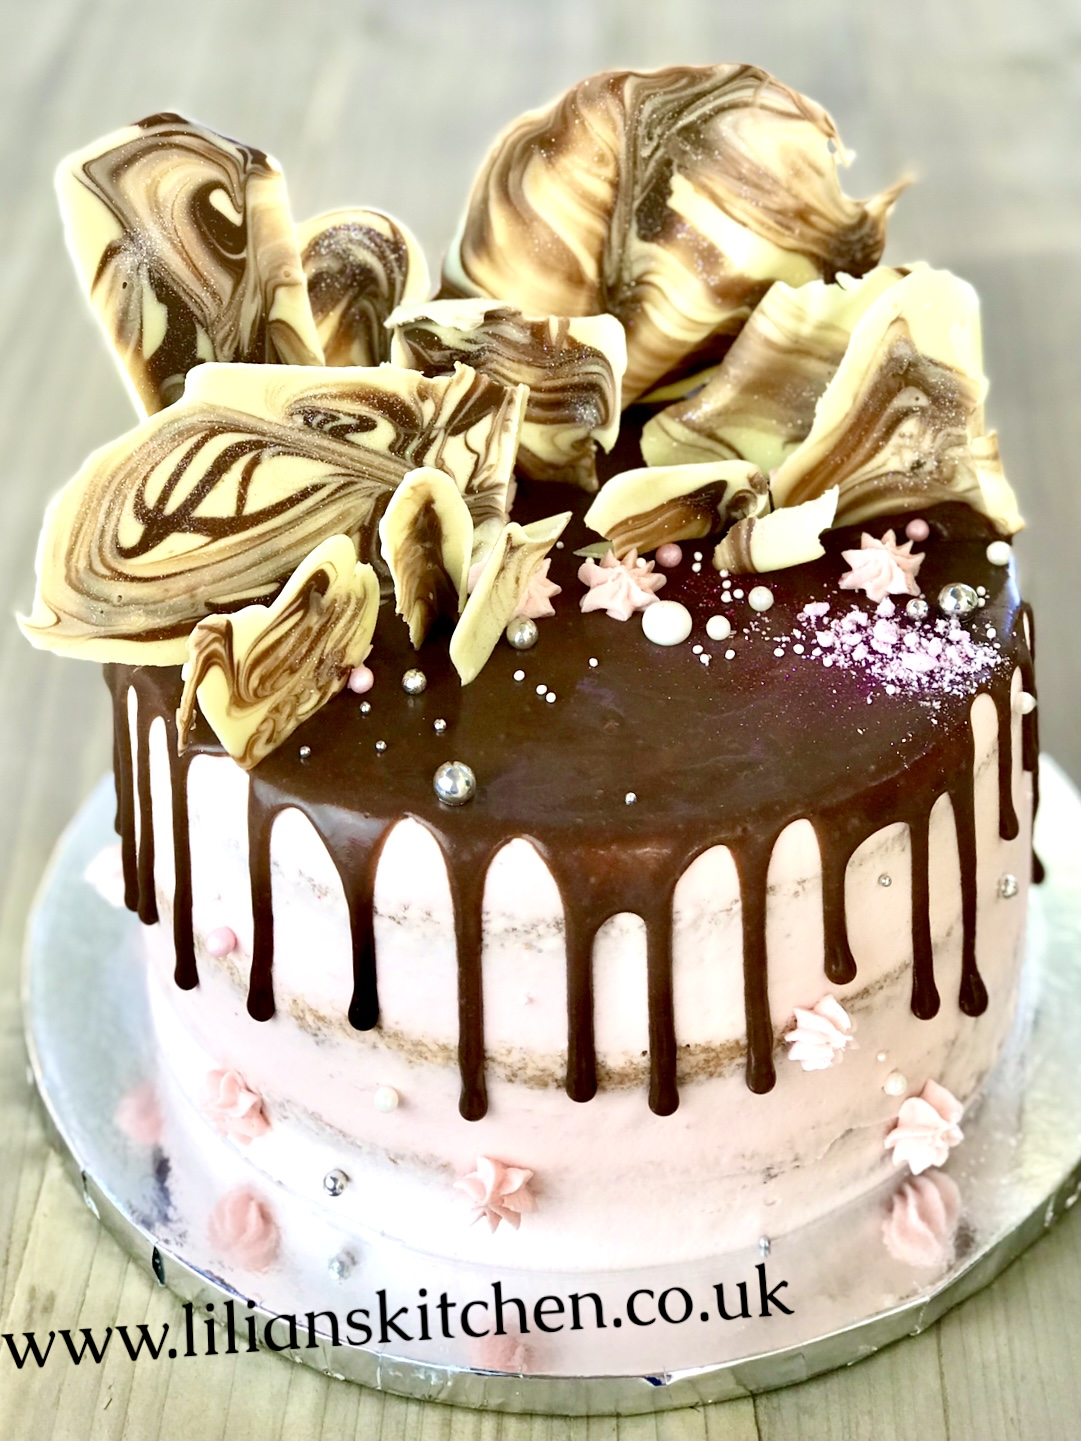 Marbled chocolate shards drip cake